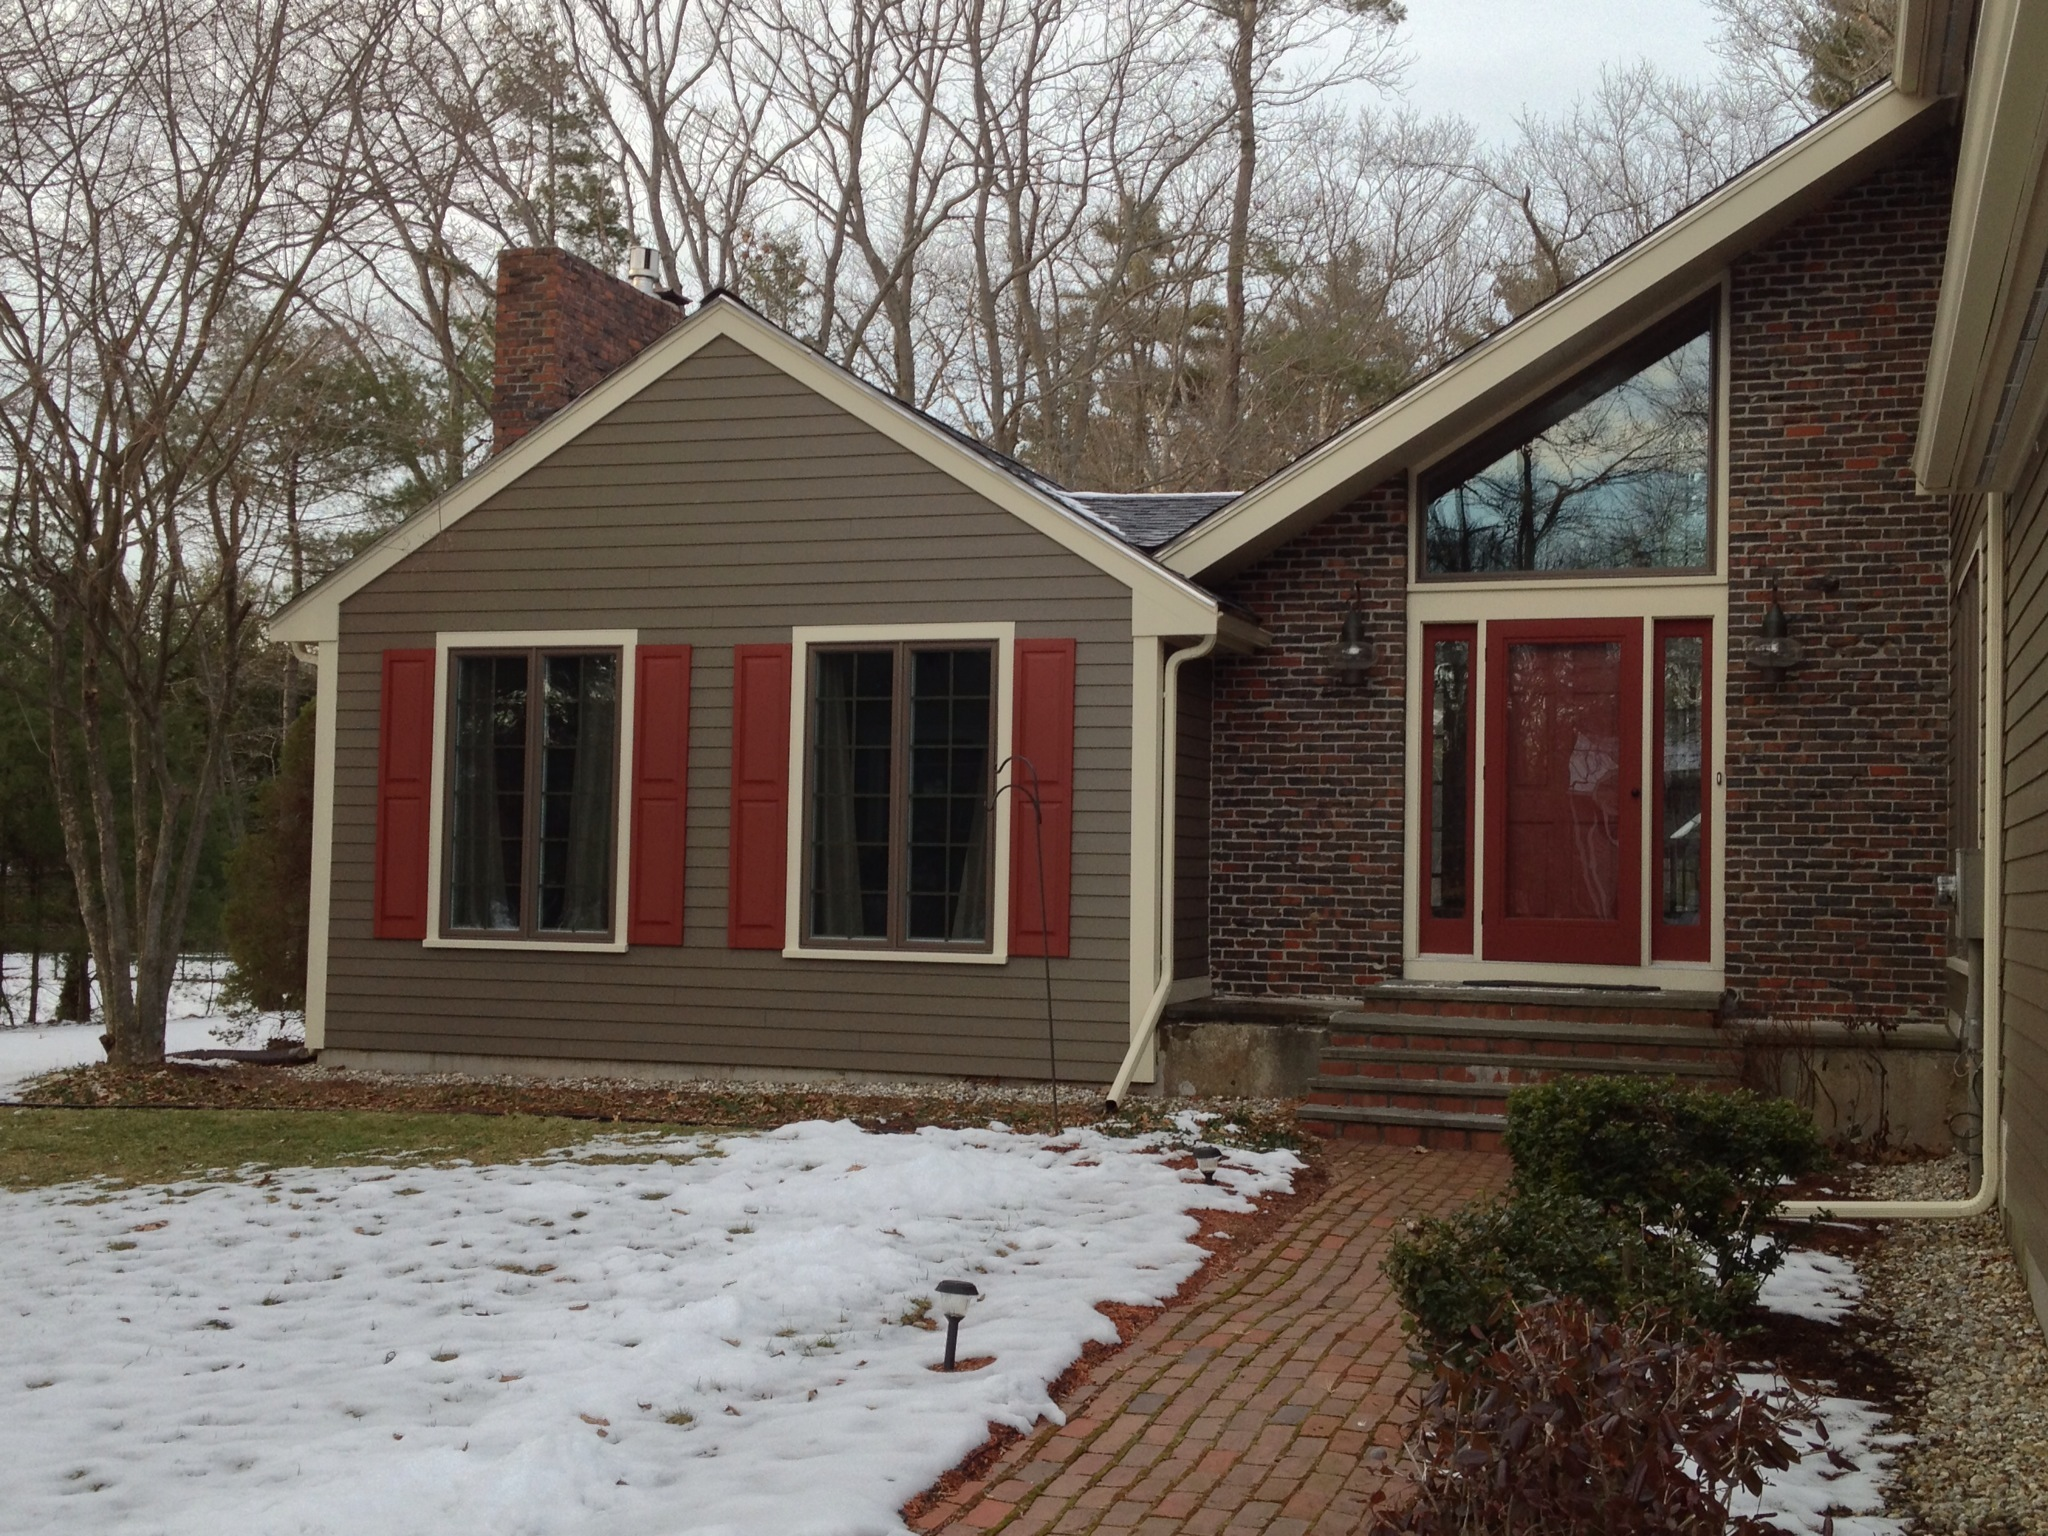 great horizontal hardie plank siding in gray with white trim board and glass window for home exterior design ideas